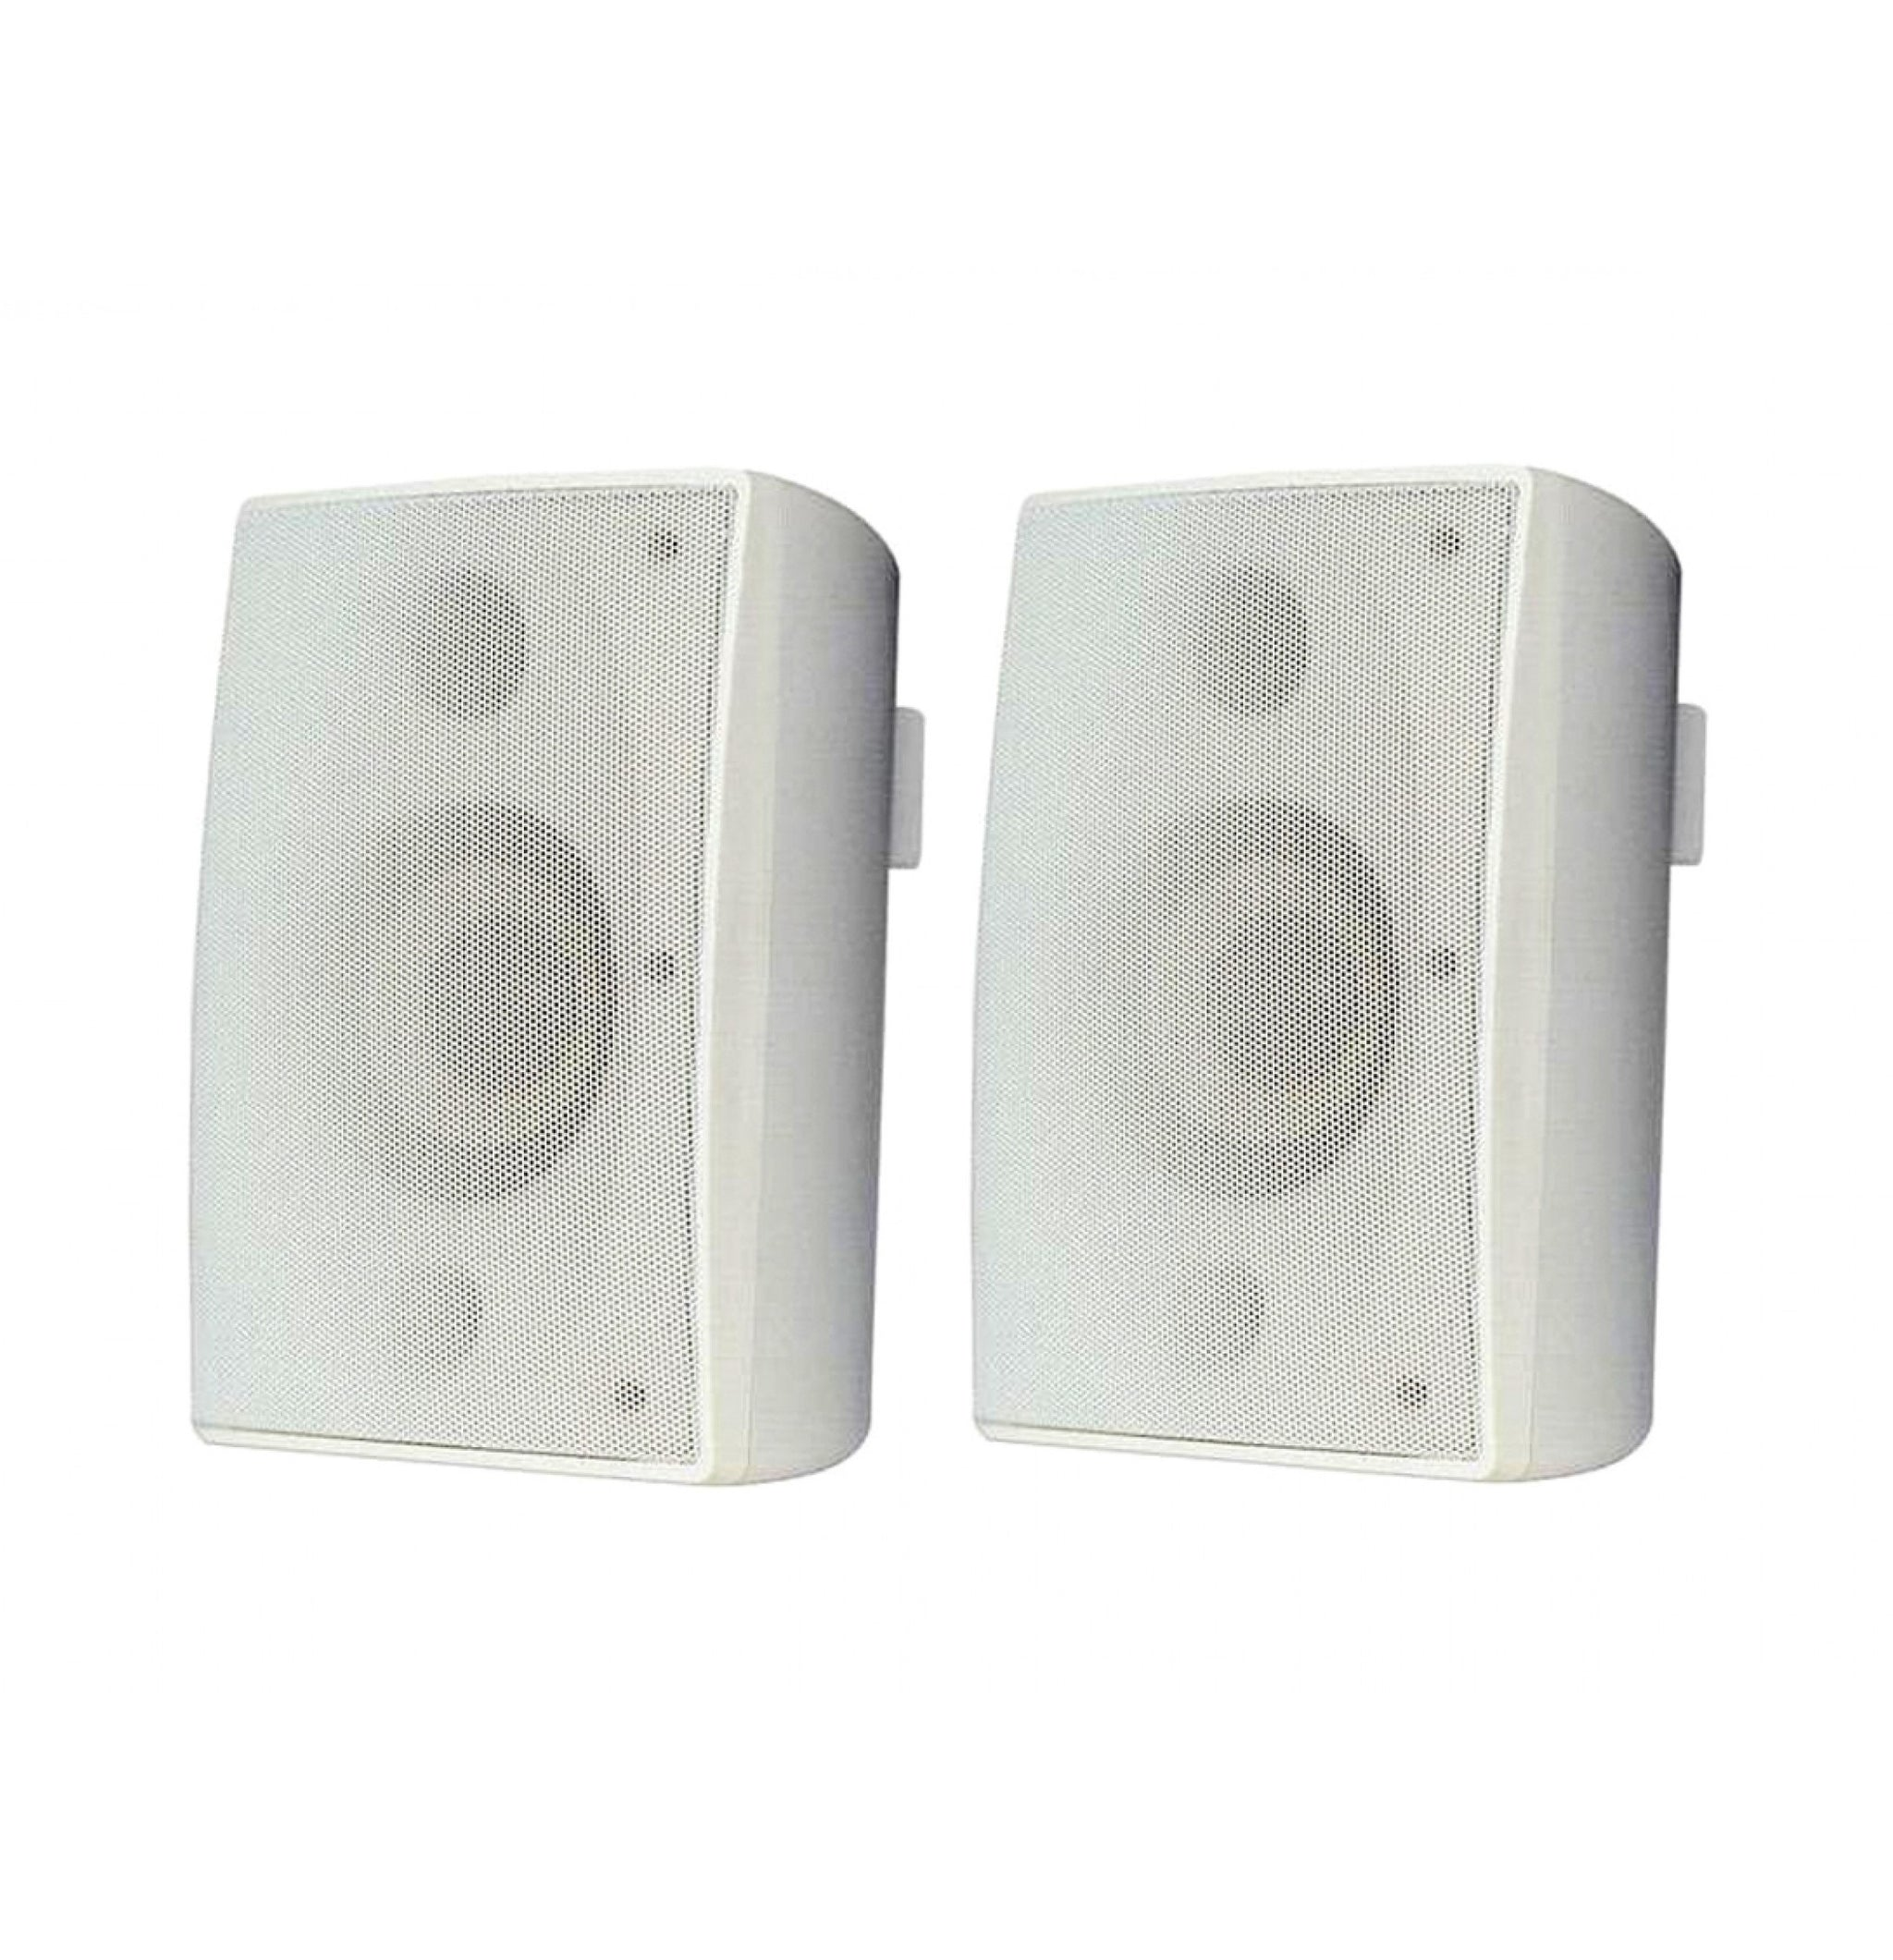 PI-NP100 Outdoor Speakers